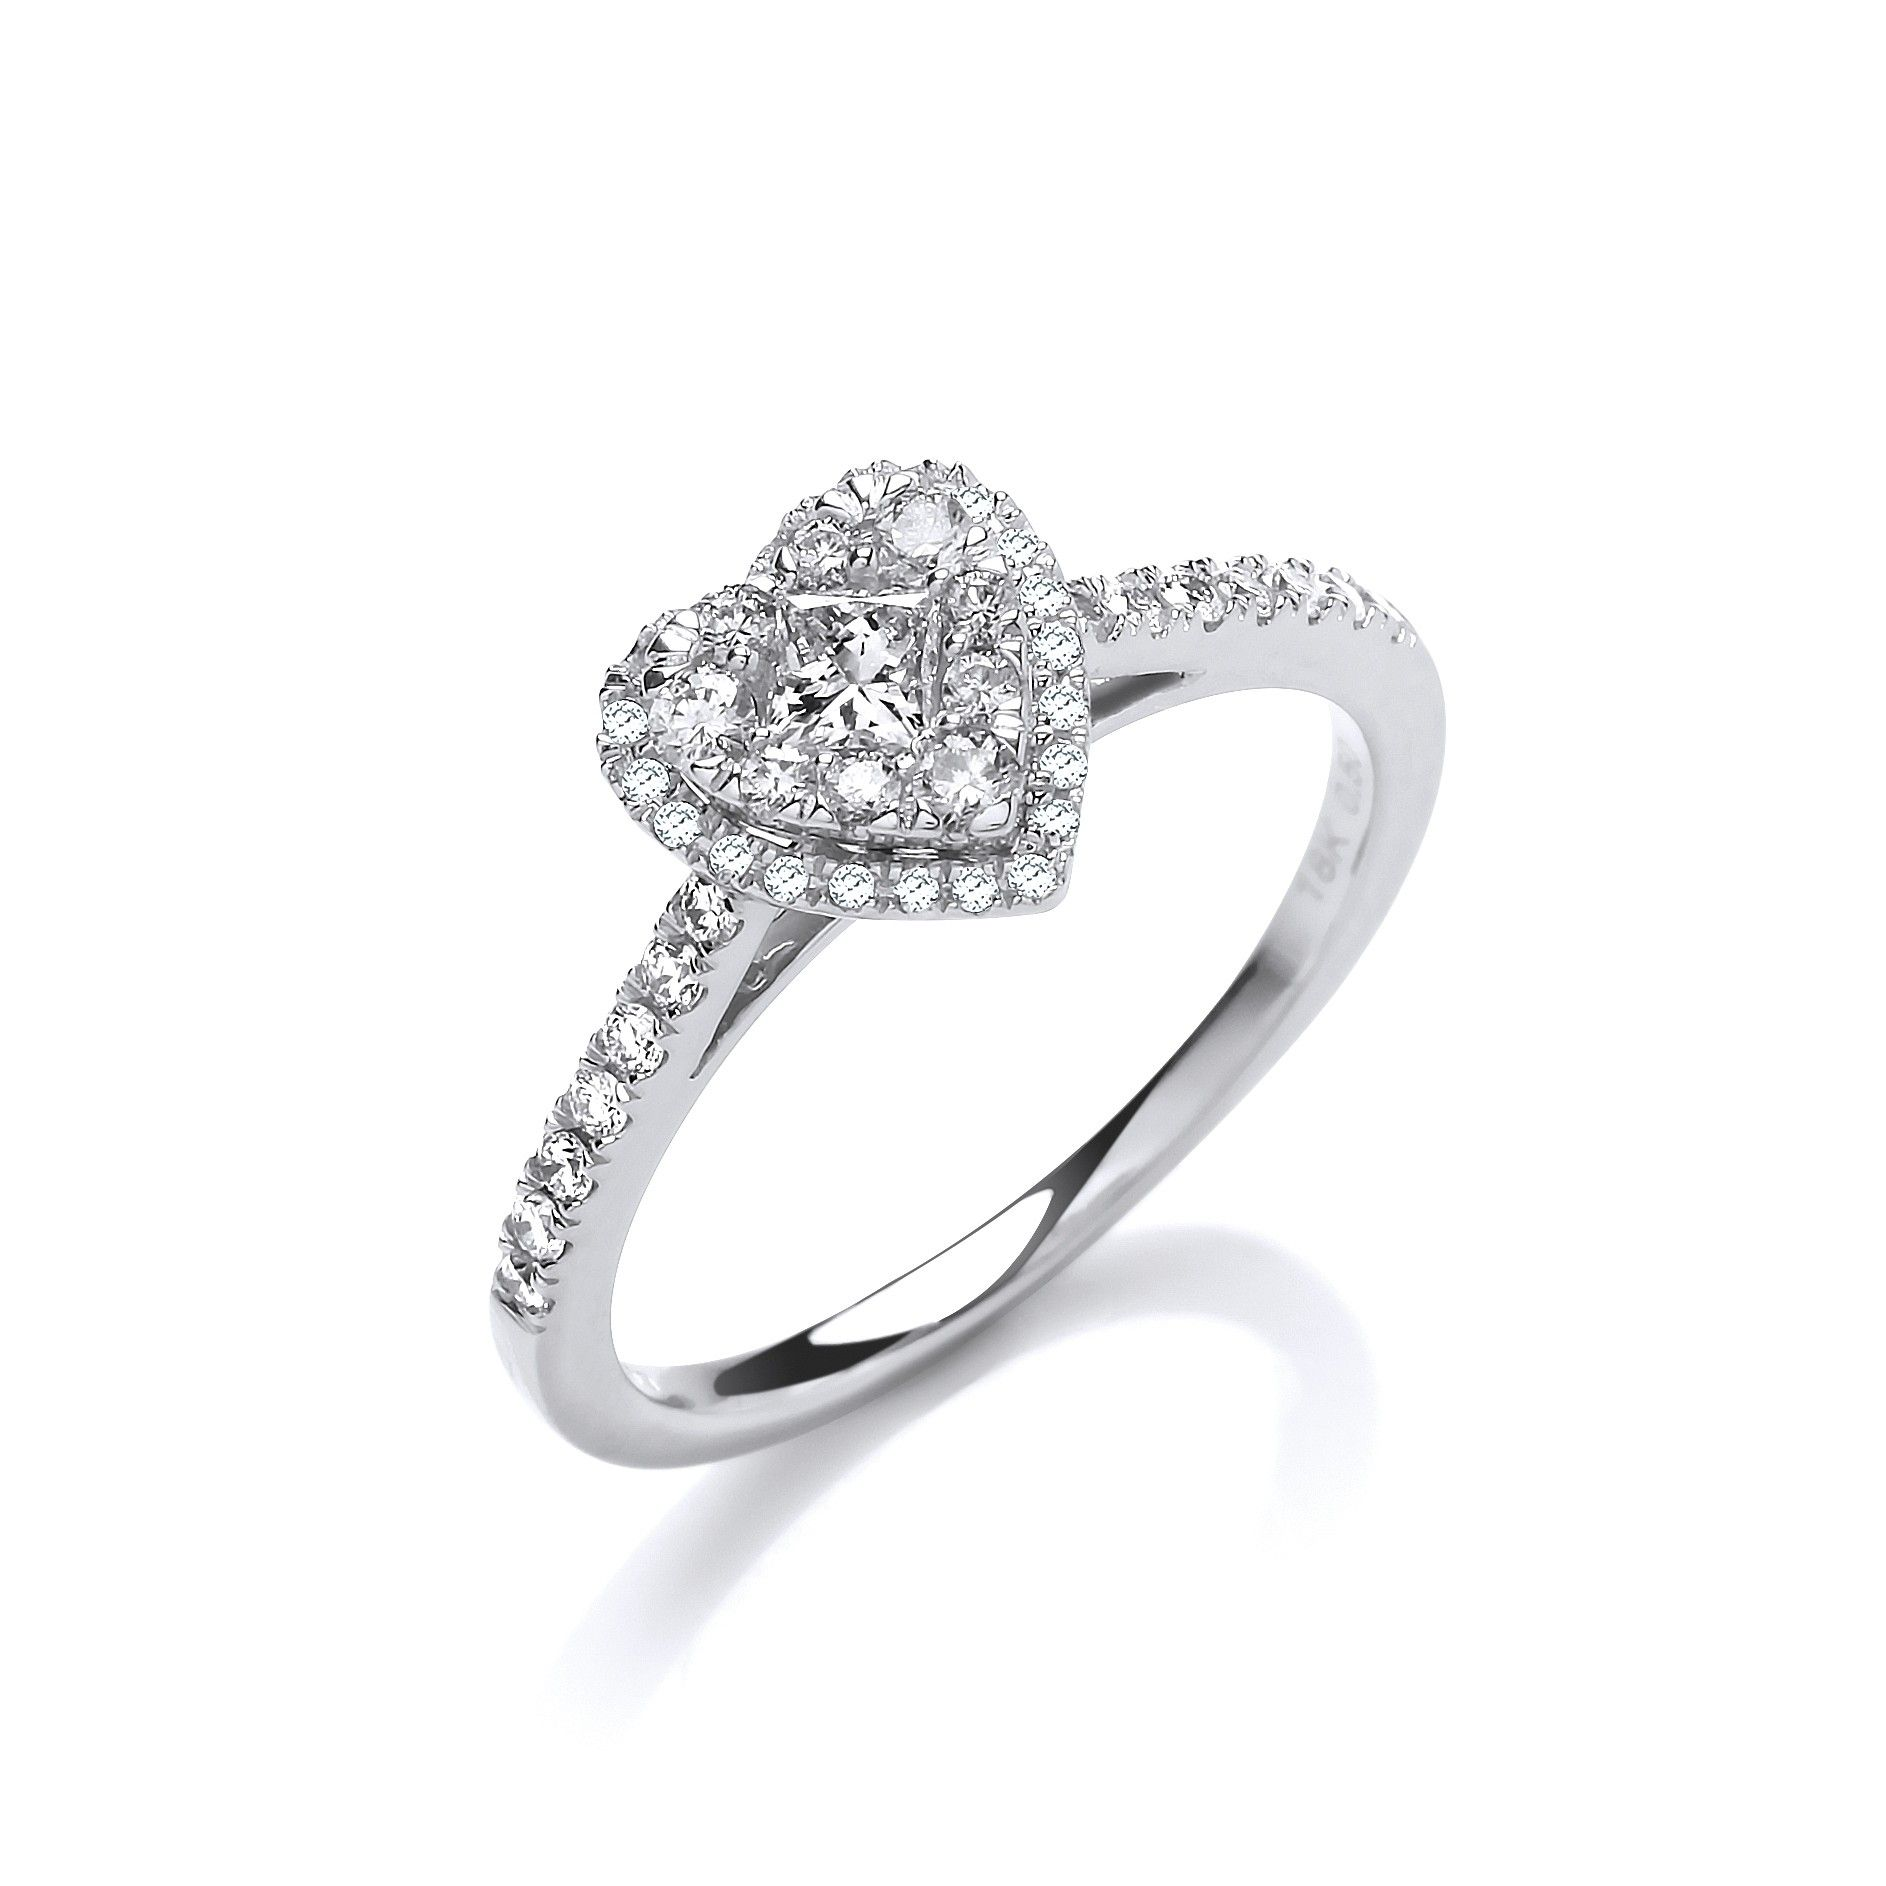 18ct white gold Heart Shaped 0.50cts Dress Ring.